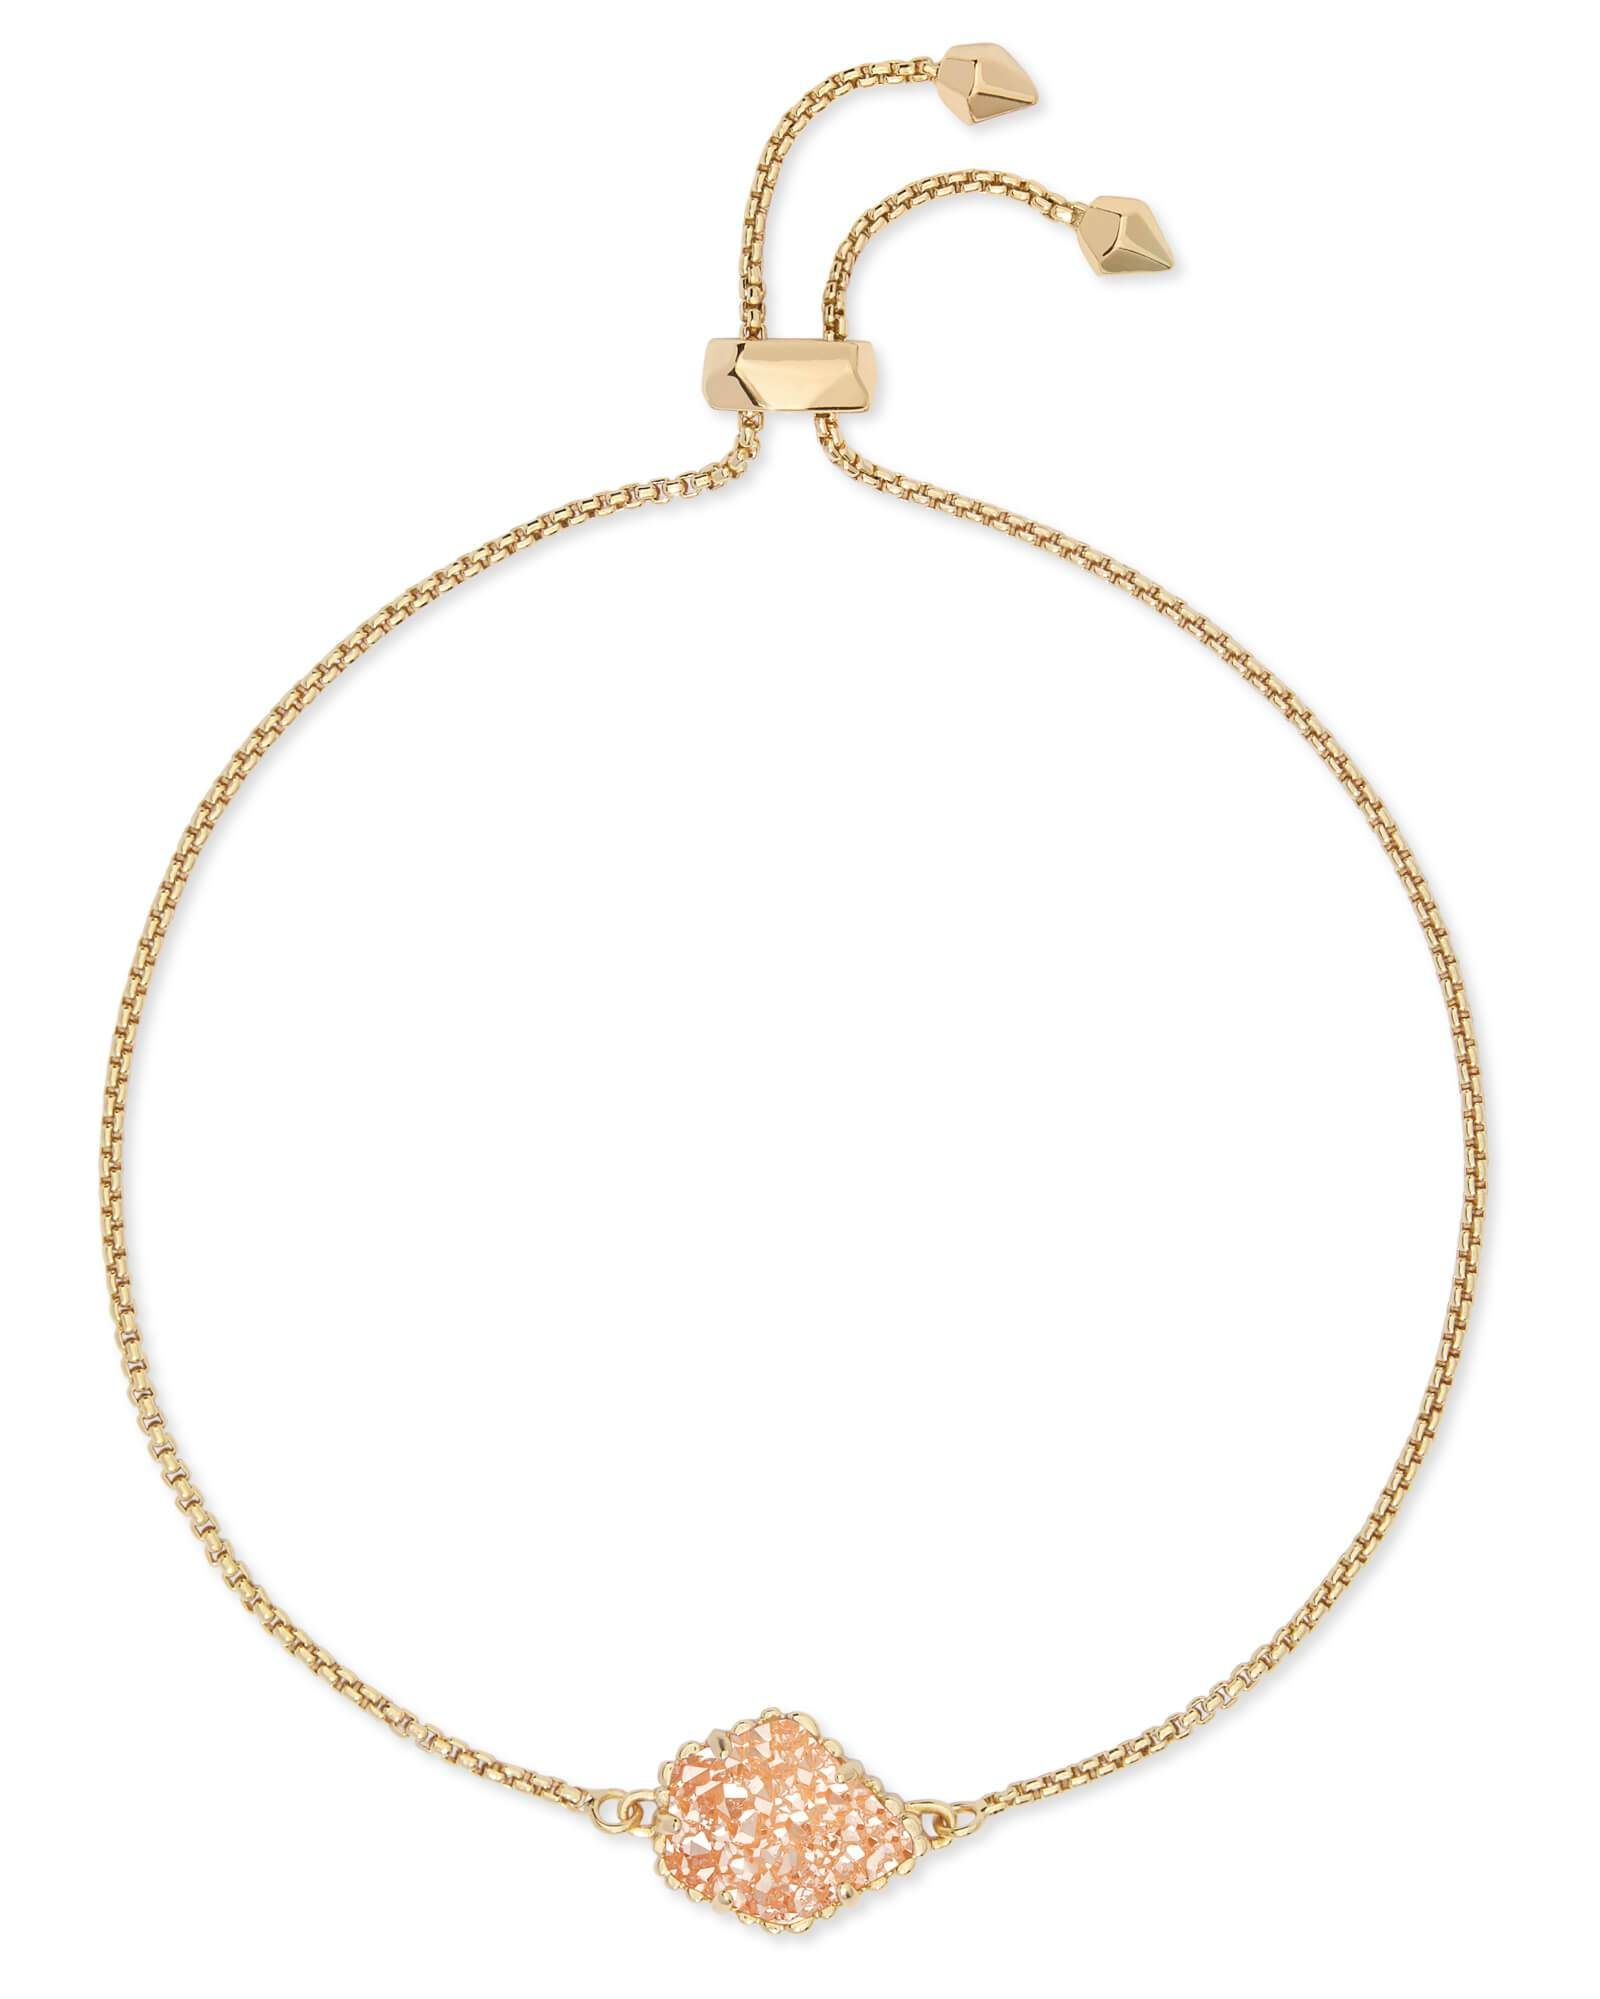 a332d25798249 Kendra Scott Theo Gold Adjustable Chain Bracelet in Sand Drusy ...